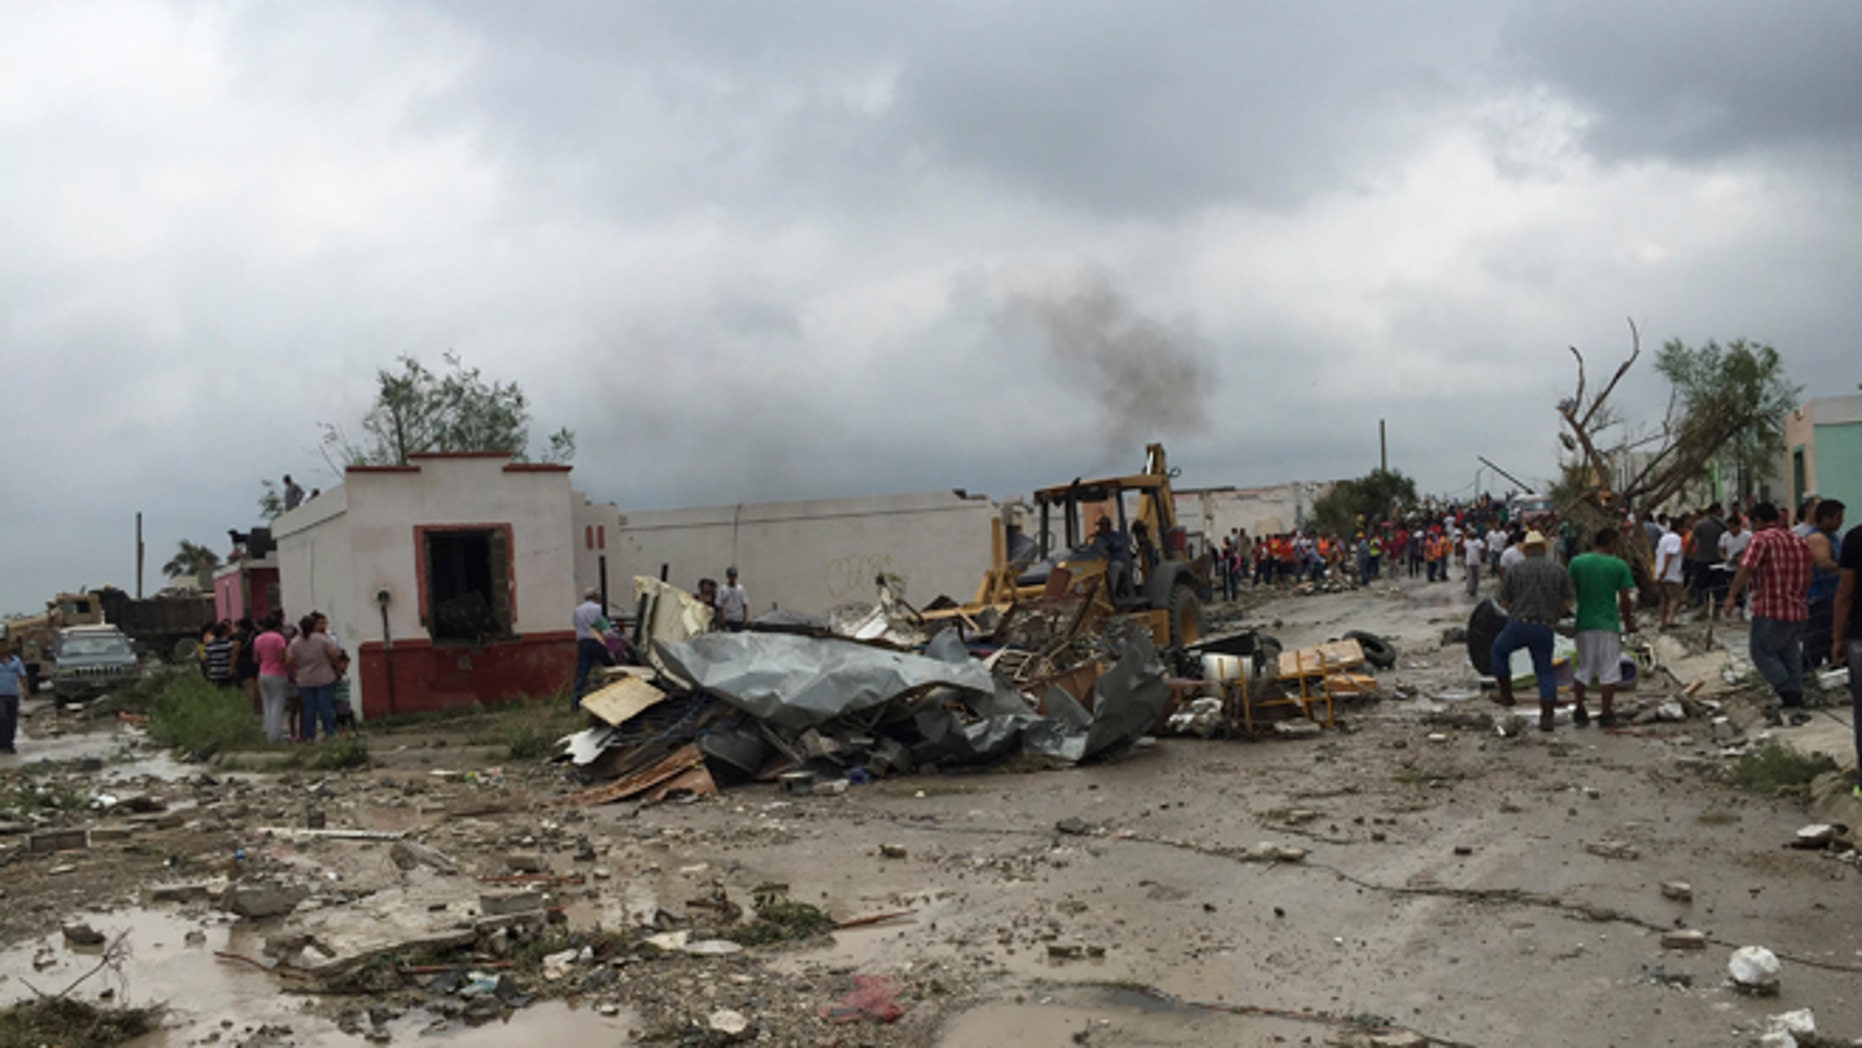 May 25, 2015: A bulldozer clears away debris after a powerful tornado swept past in Ciudad Acuna, northern Mexico.